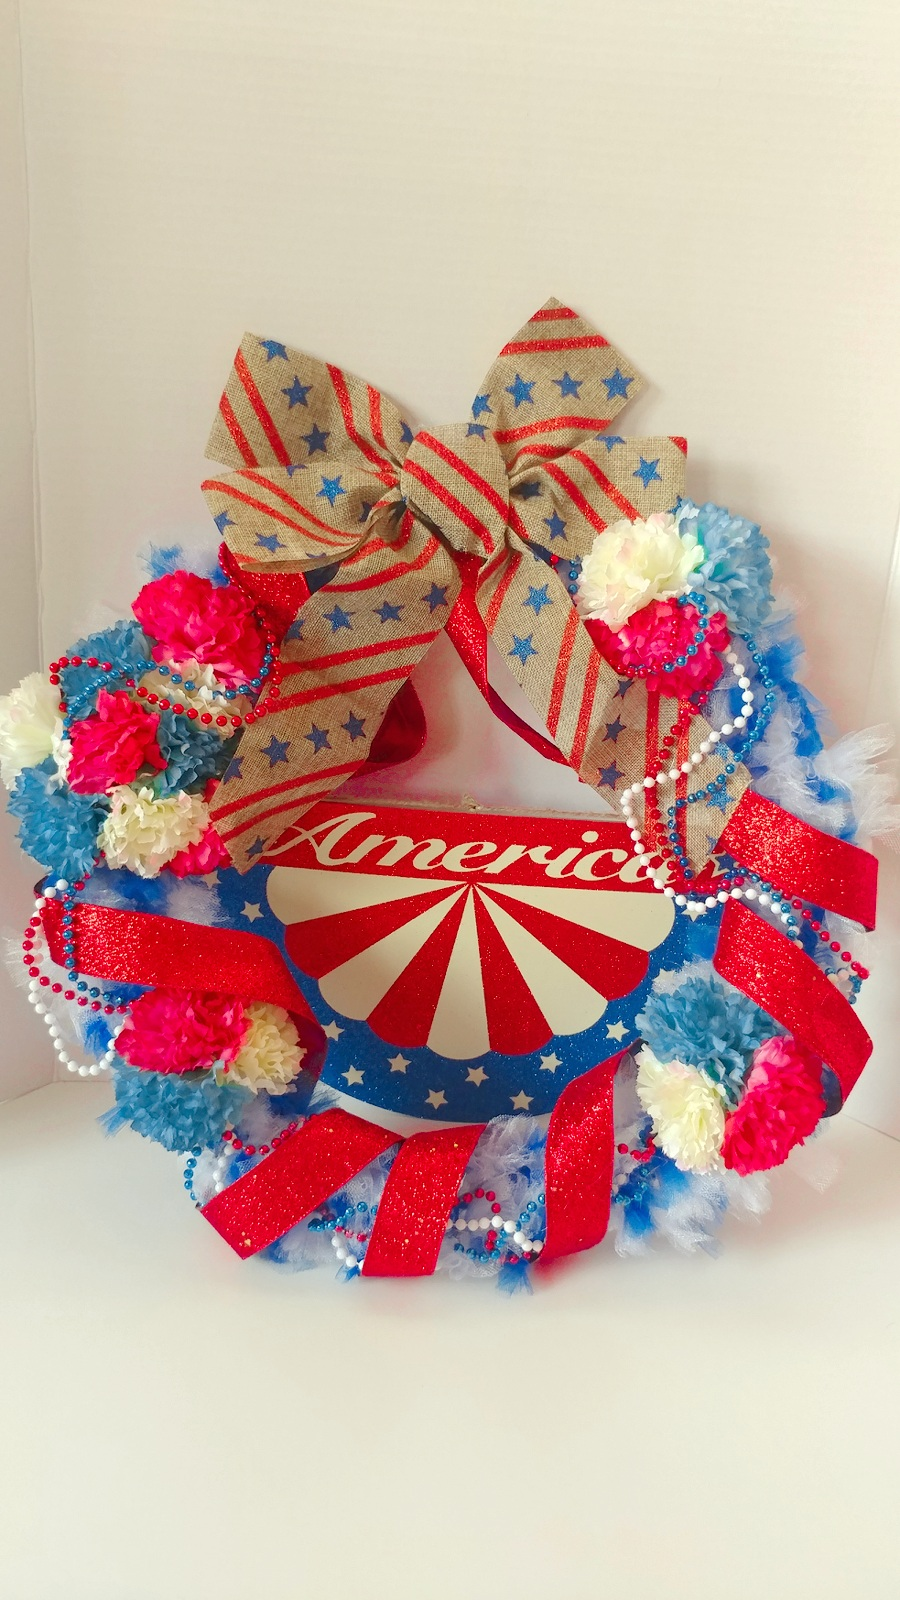 DIY Americana Wreath for 4th of July